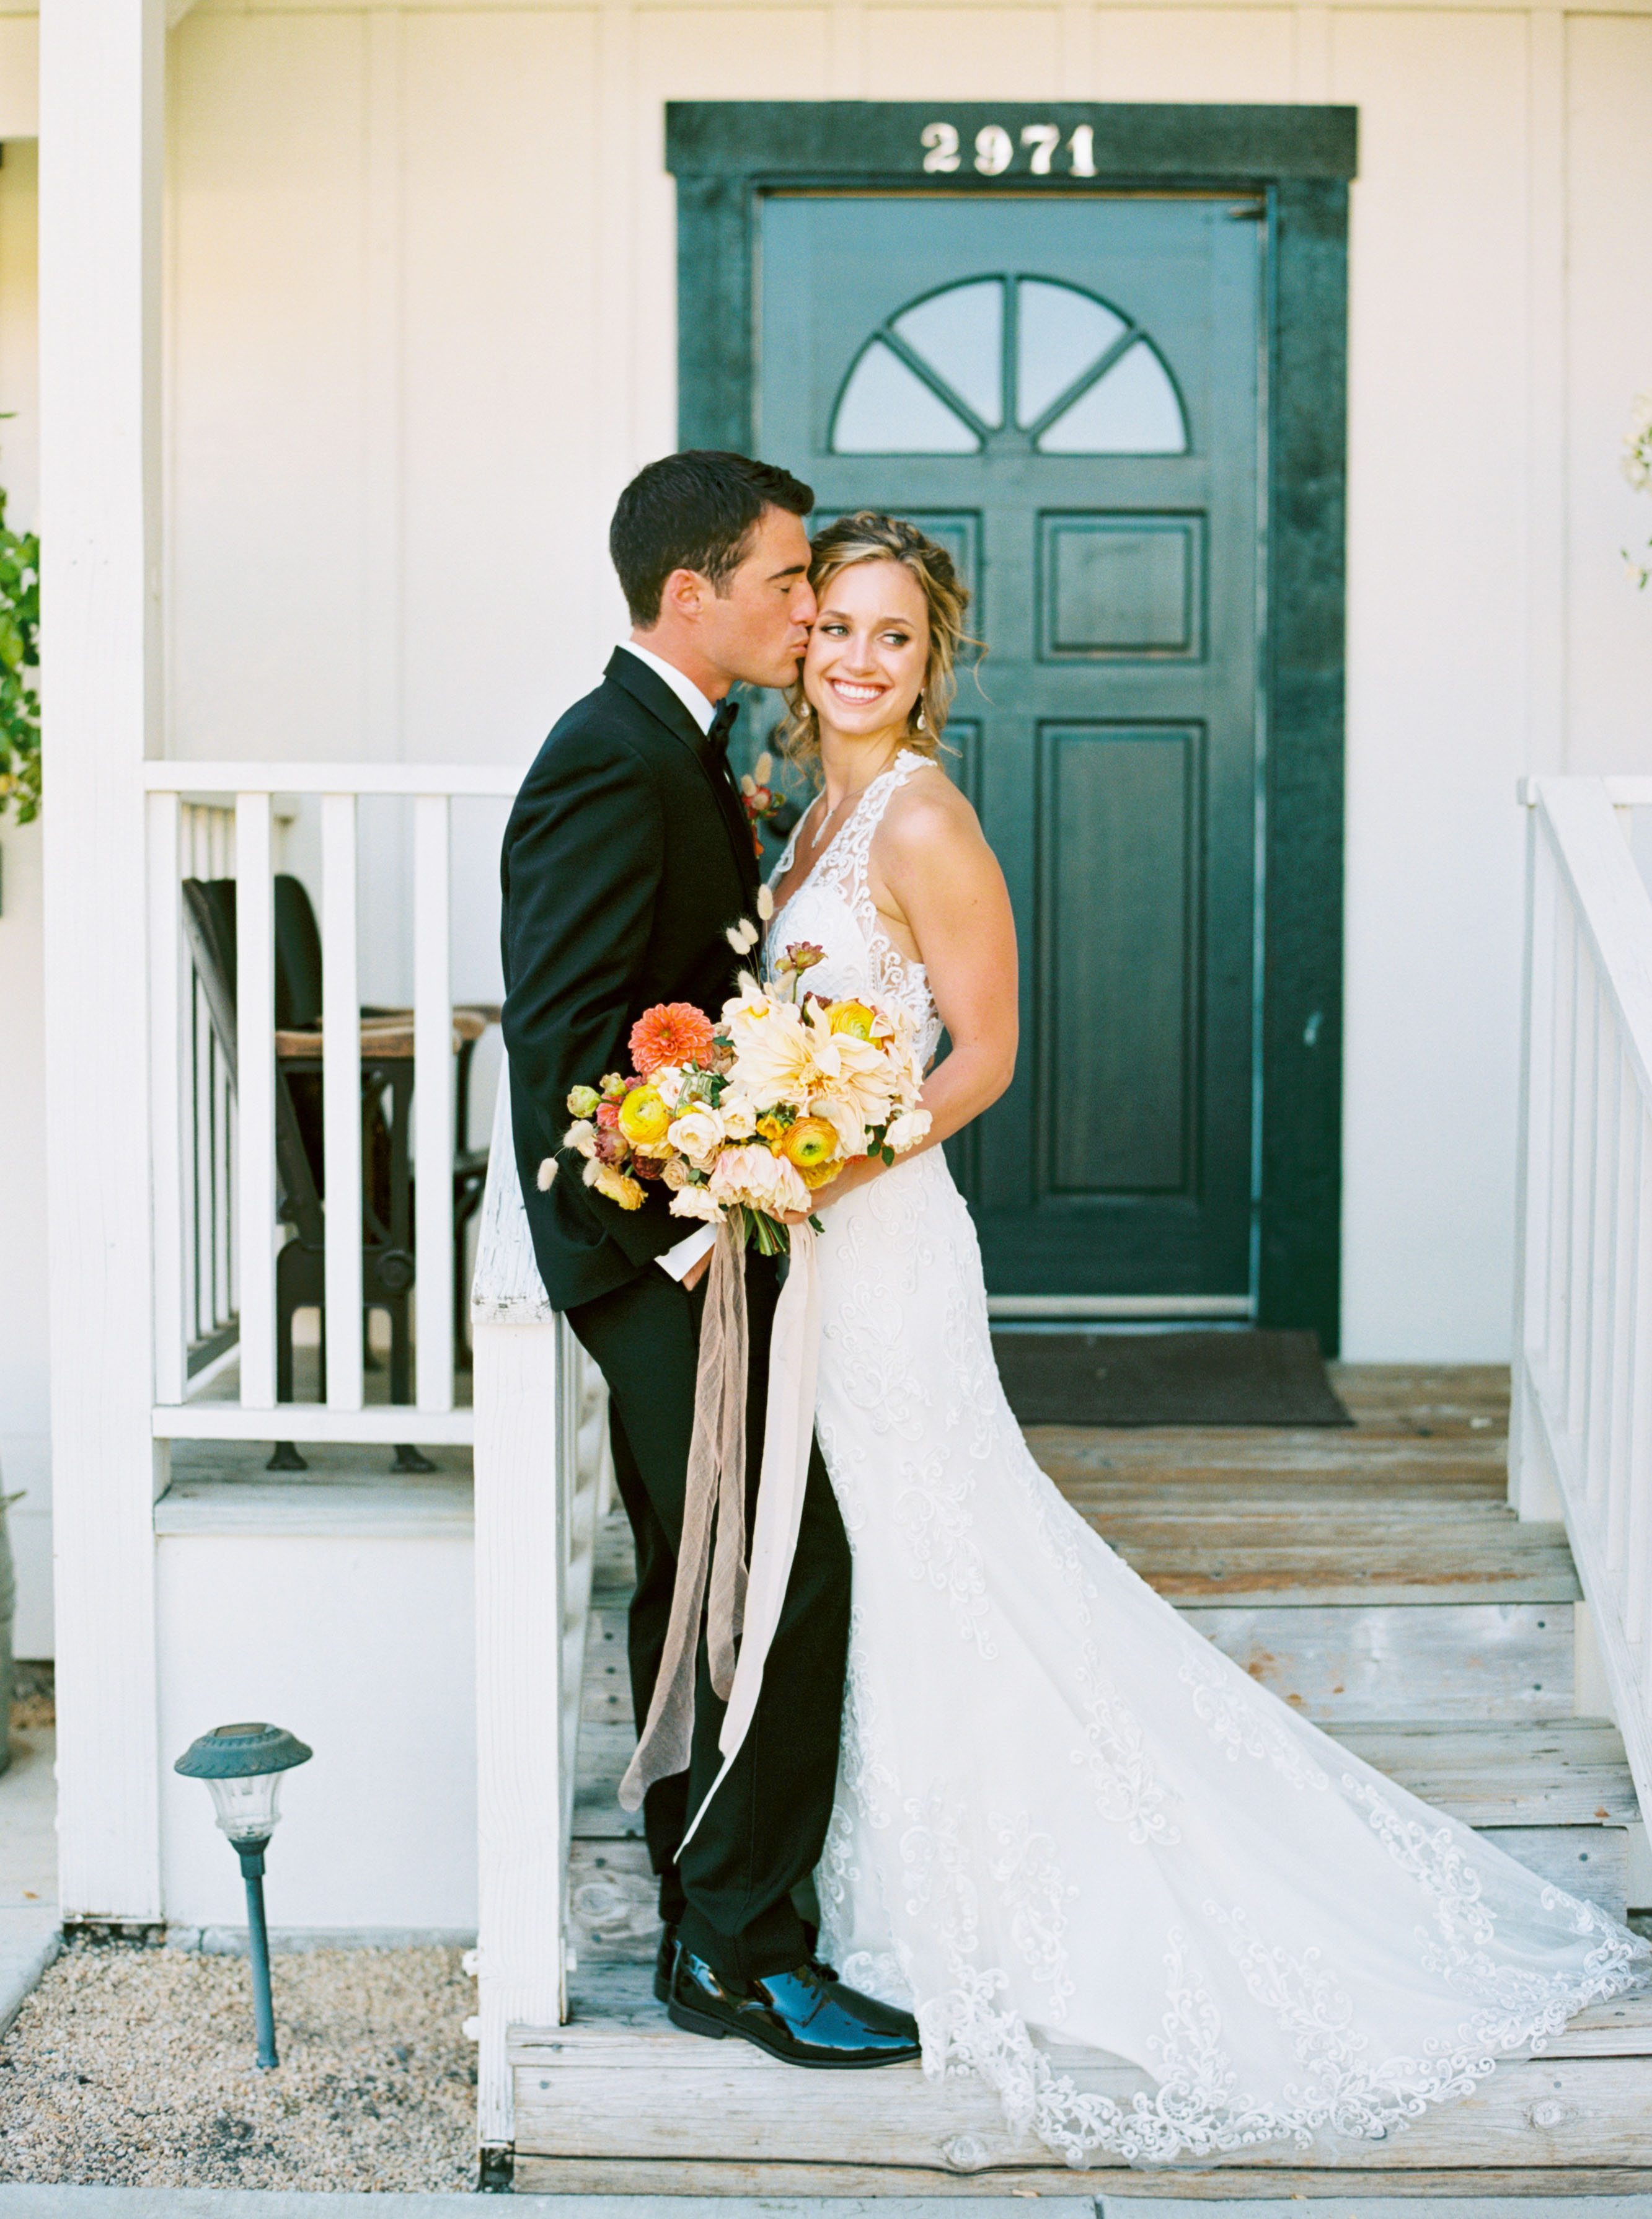 groom kisses bride on front porch steps